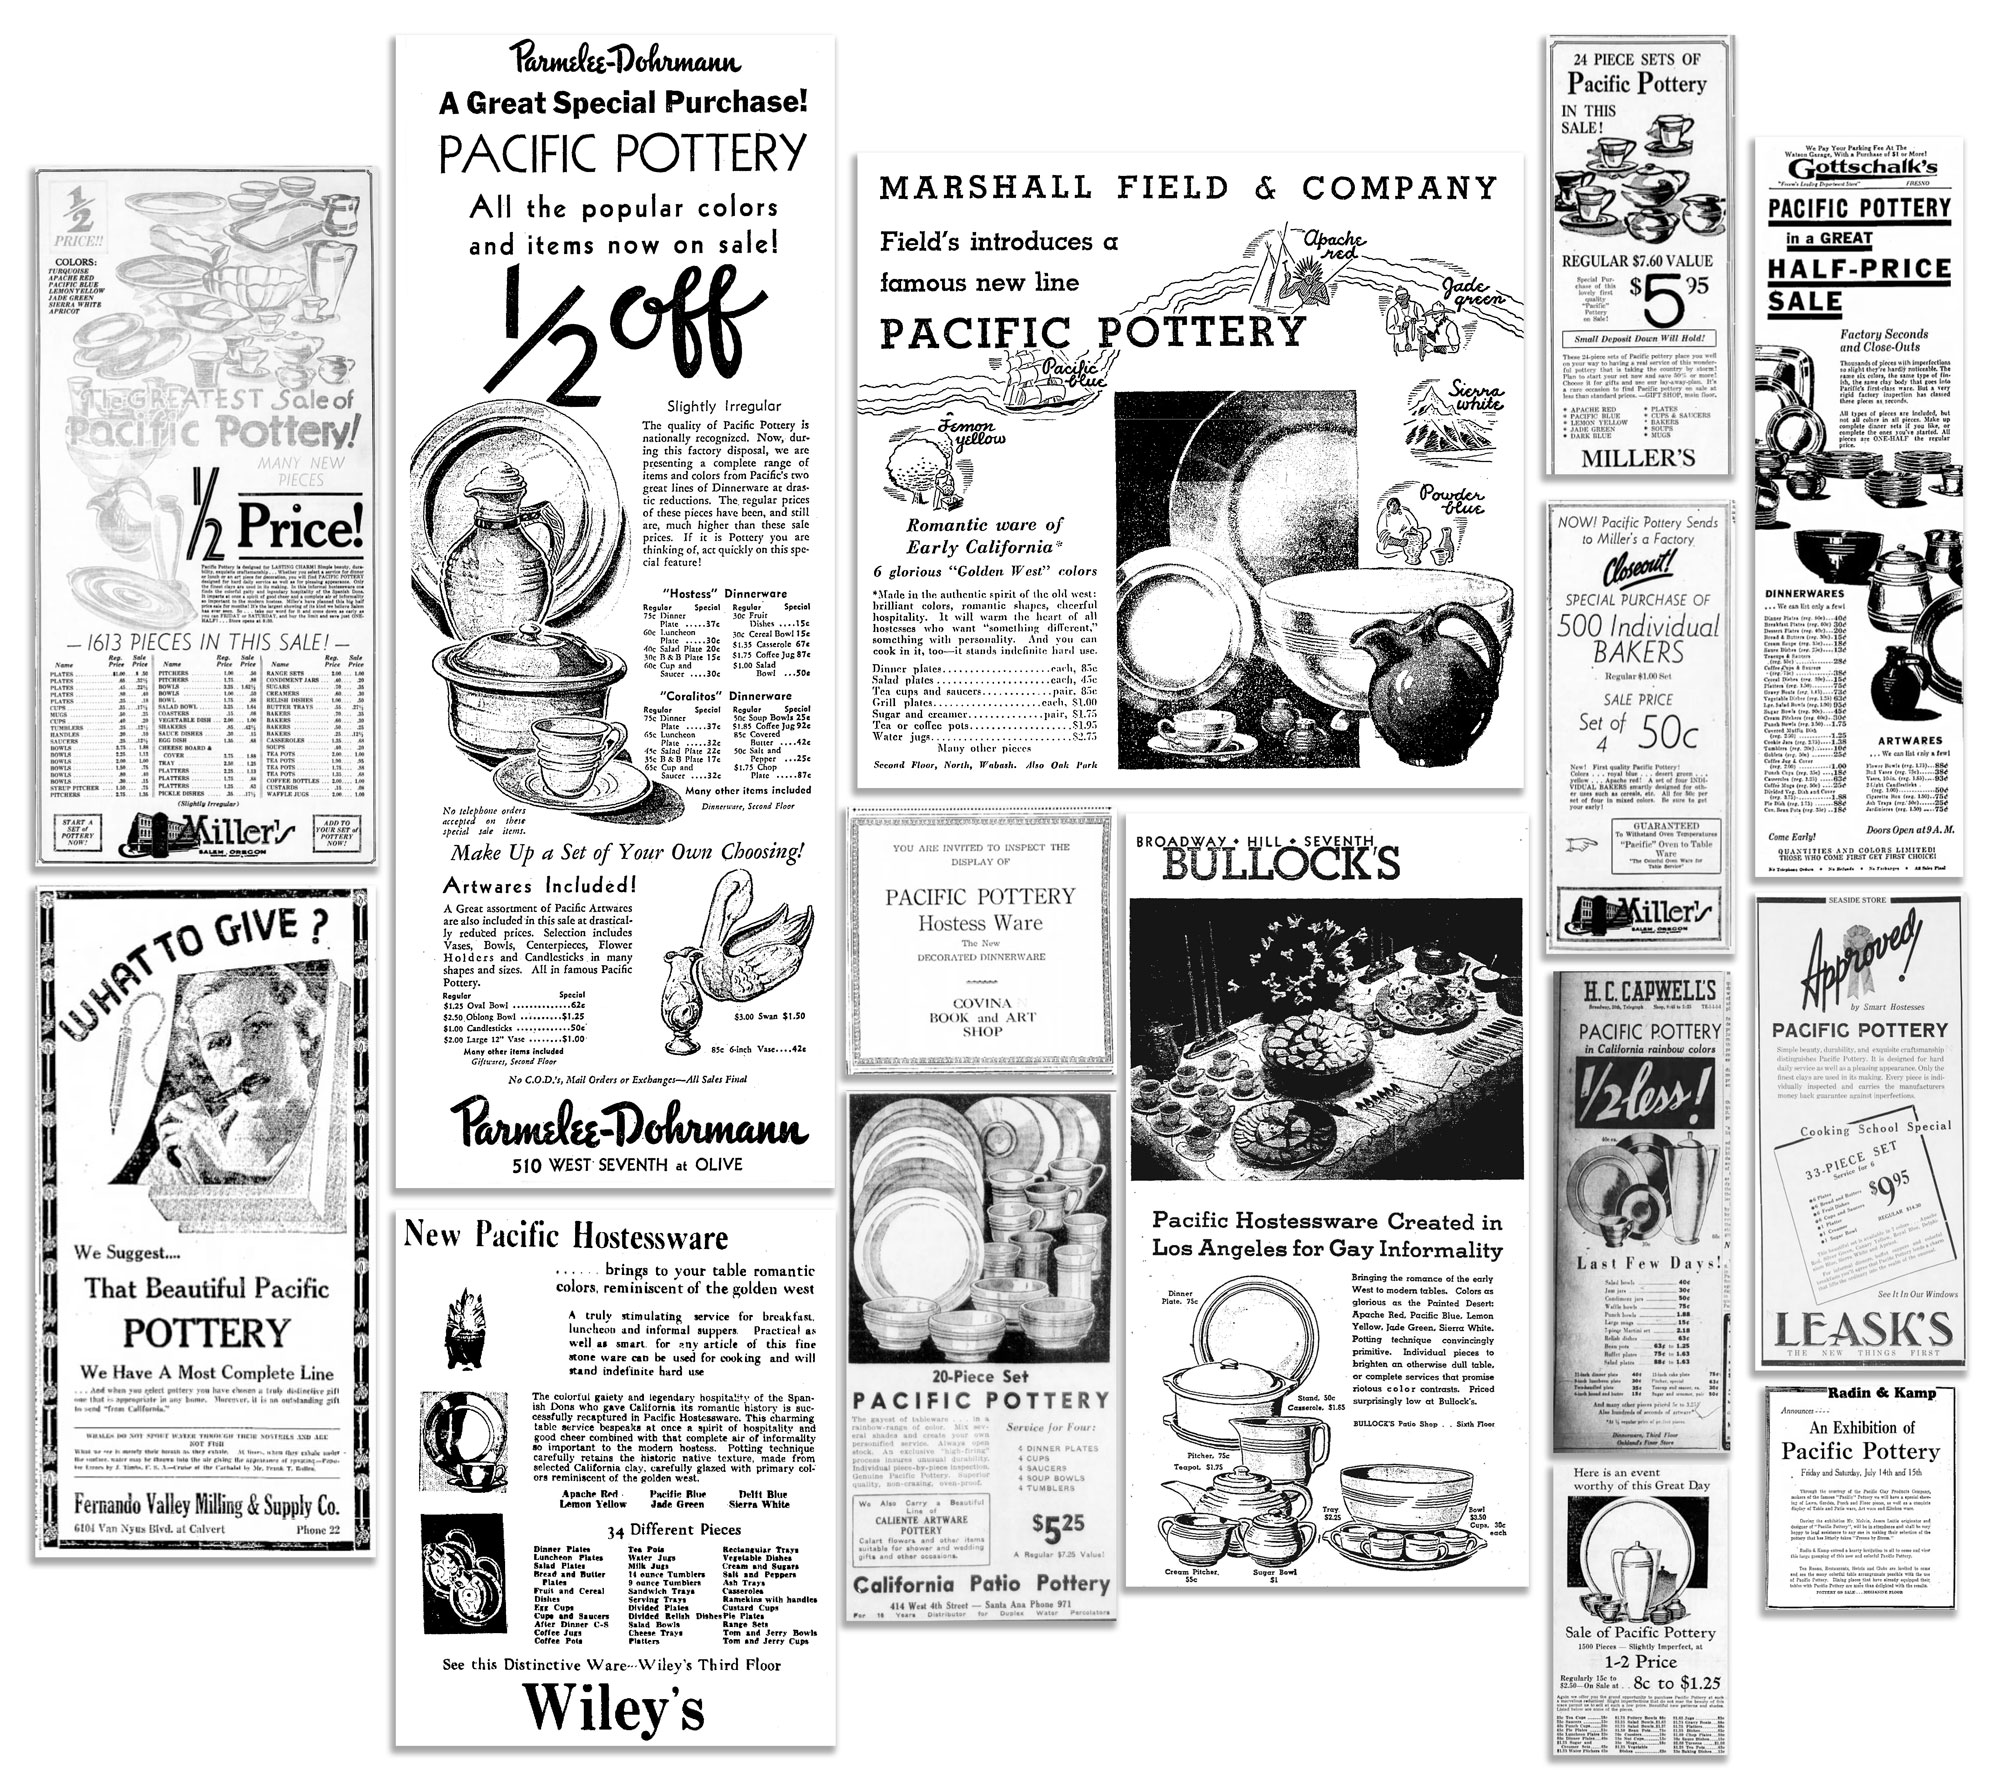 1930s Pacific Pottery Display Advertising